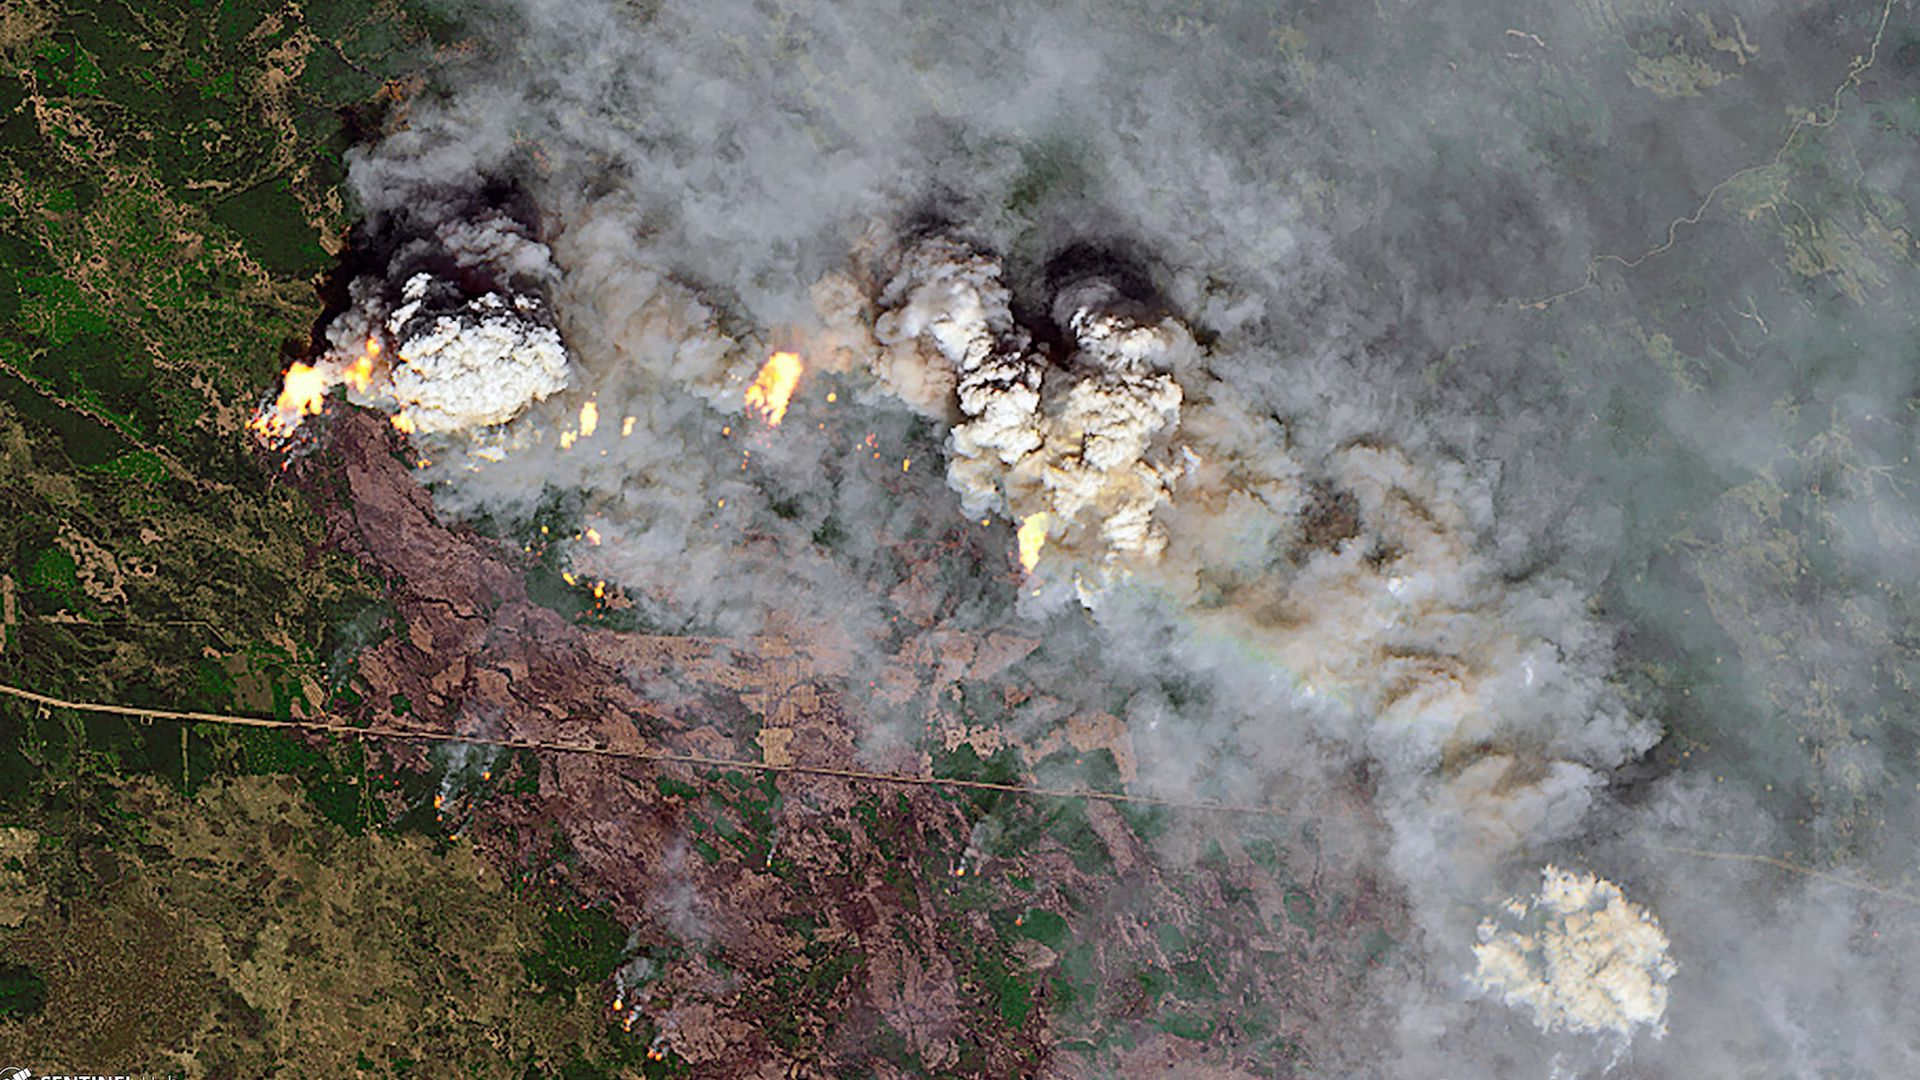 Pyrocumulus clouds from Alberta wildfires seen via satellite imagery.